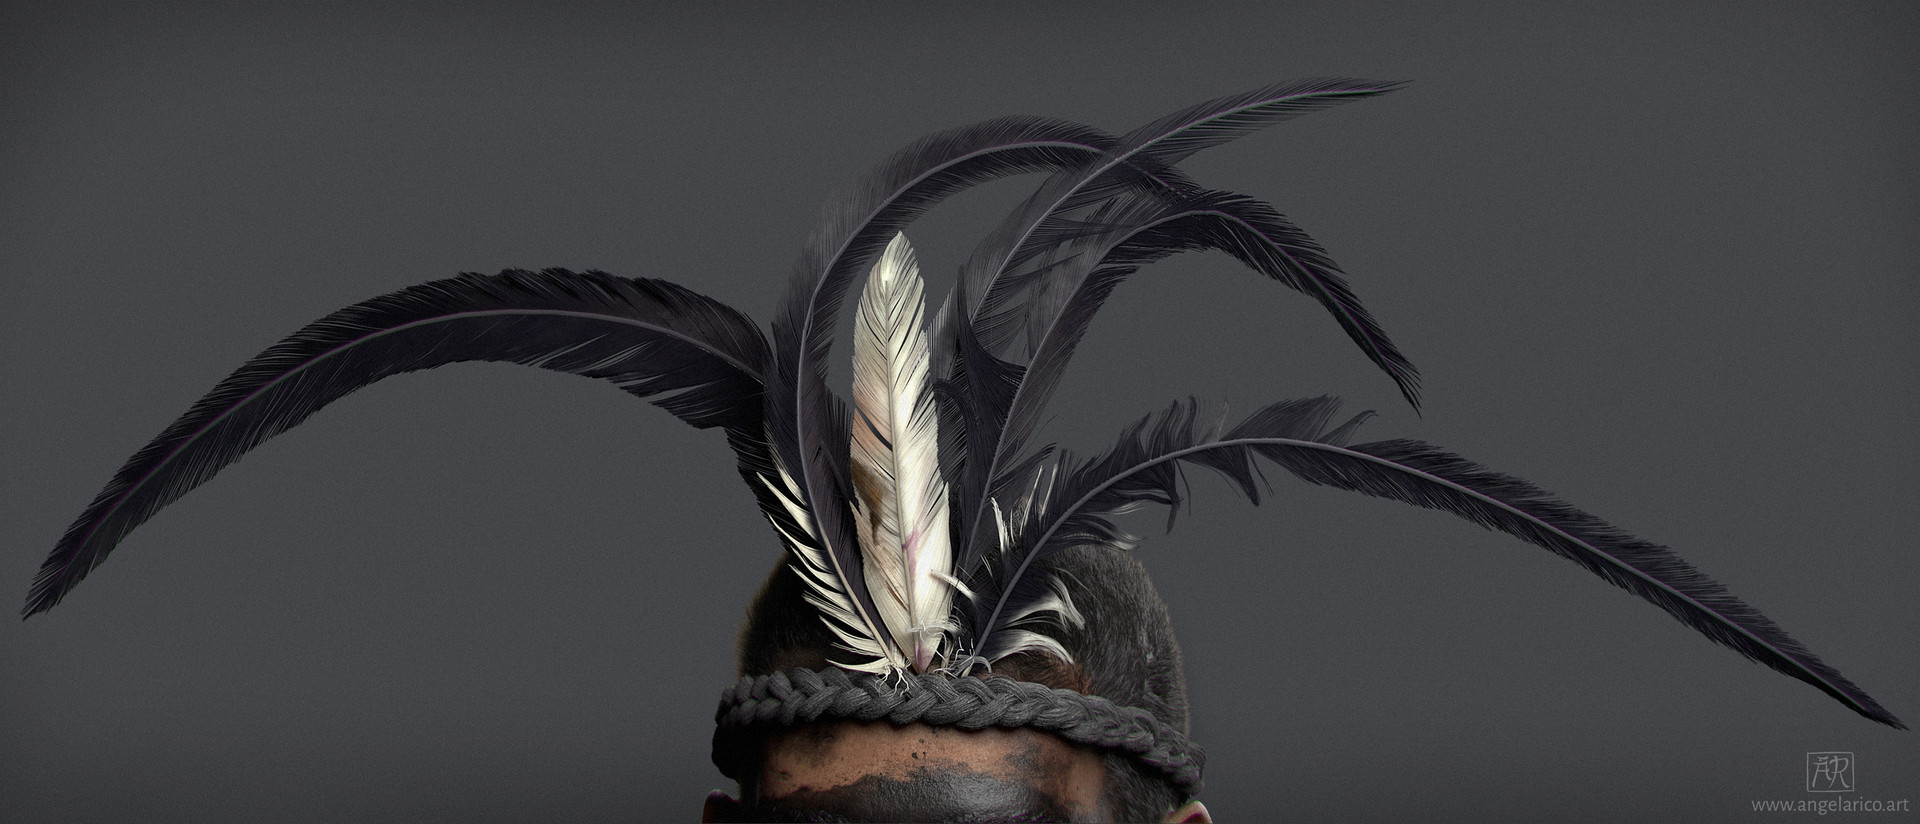 Angela rico feathers s